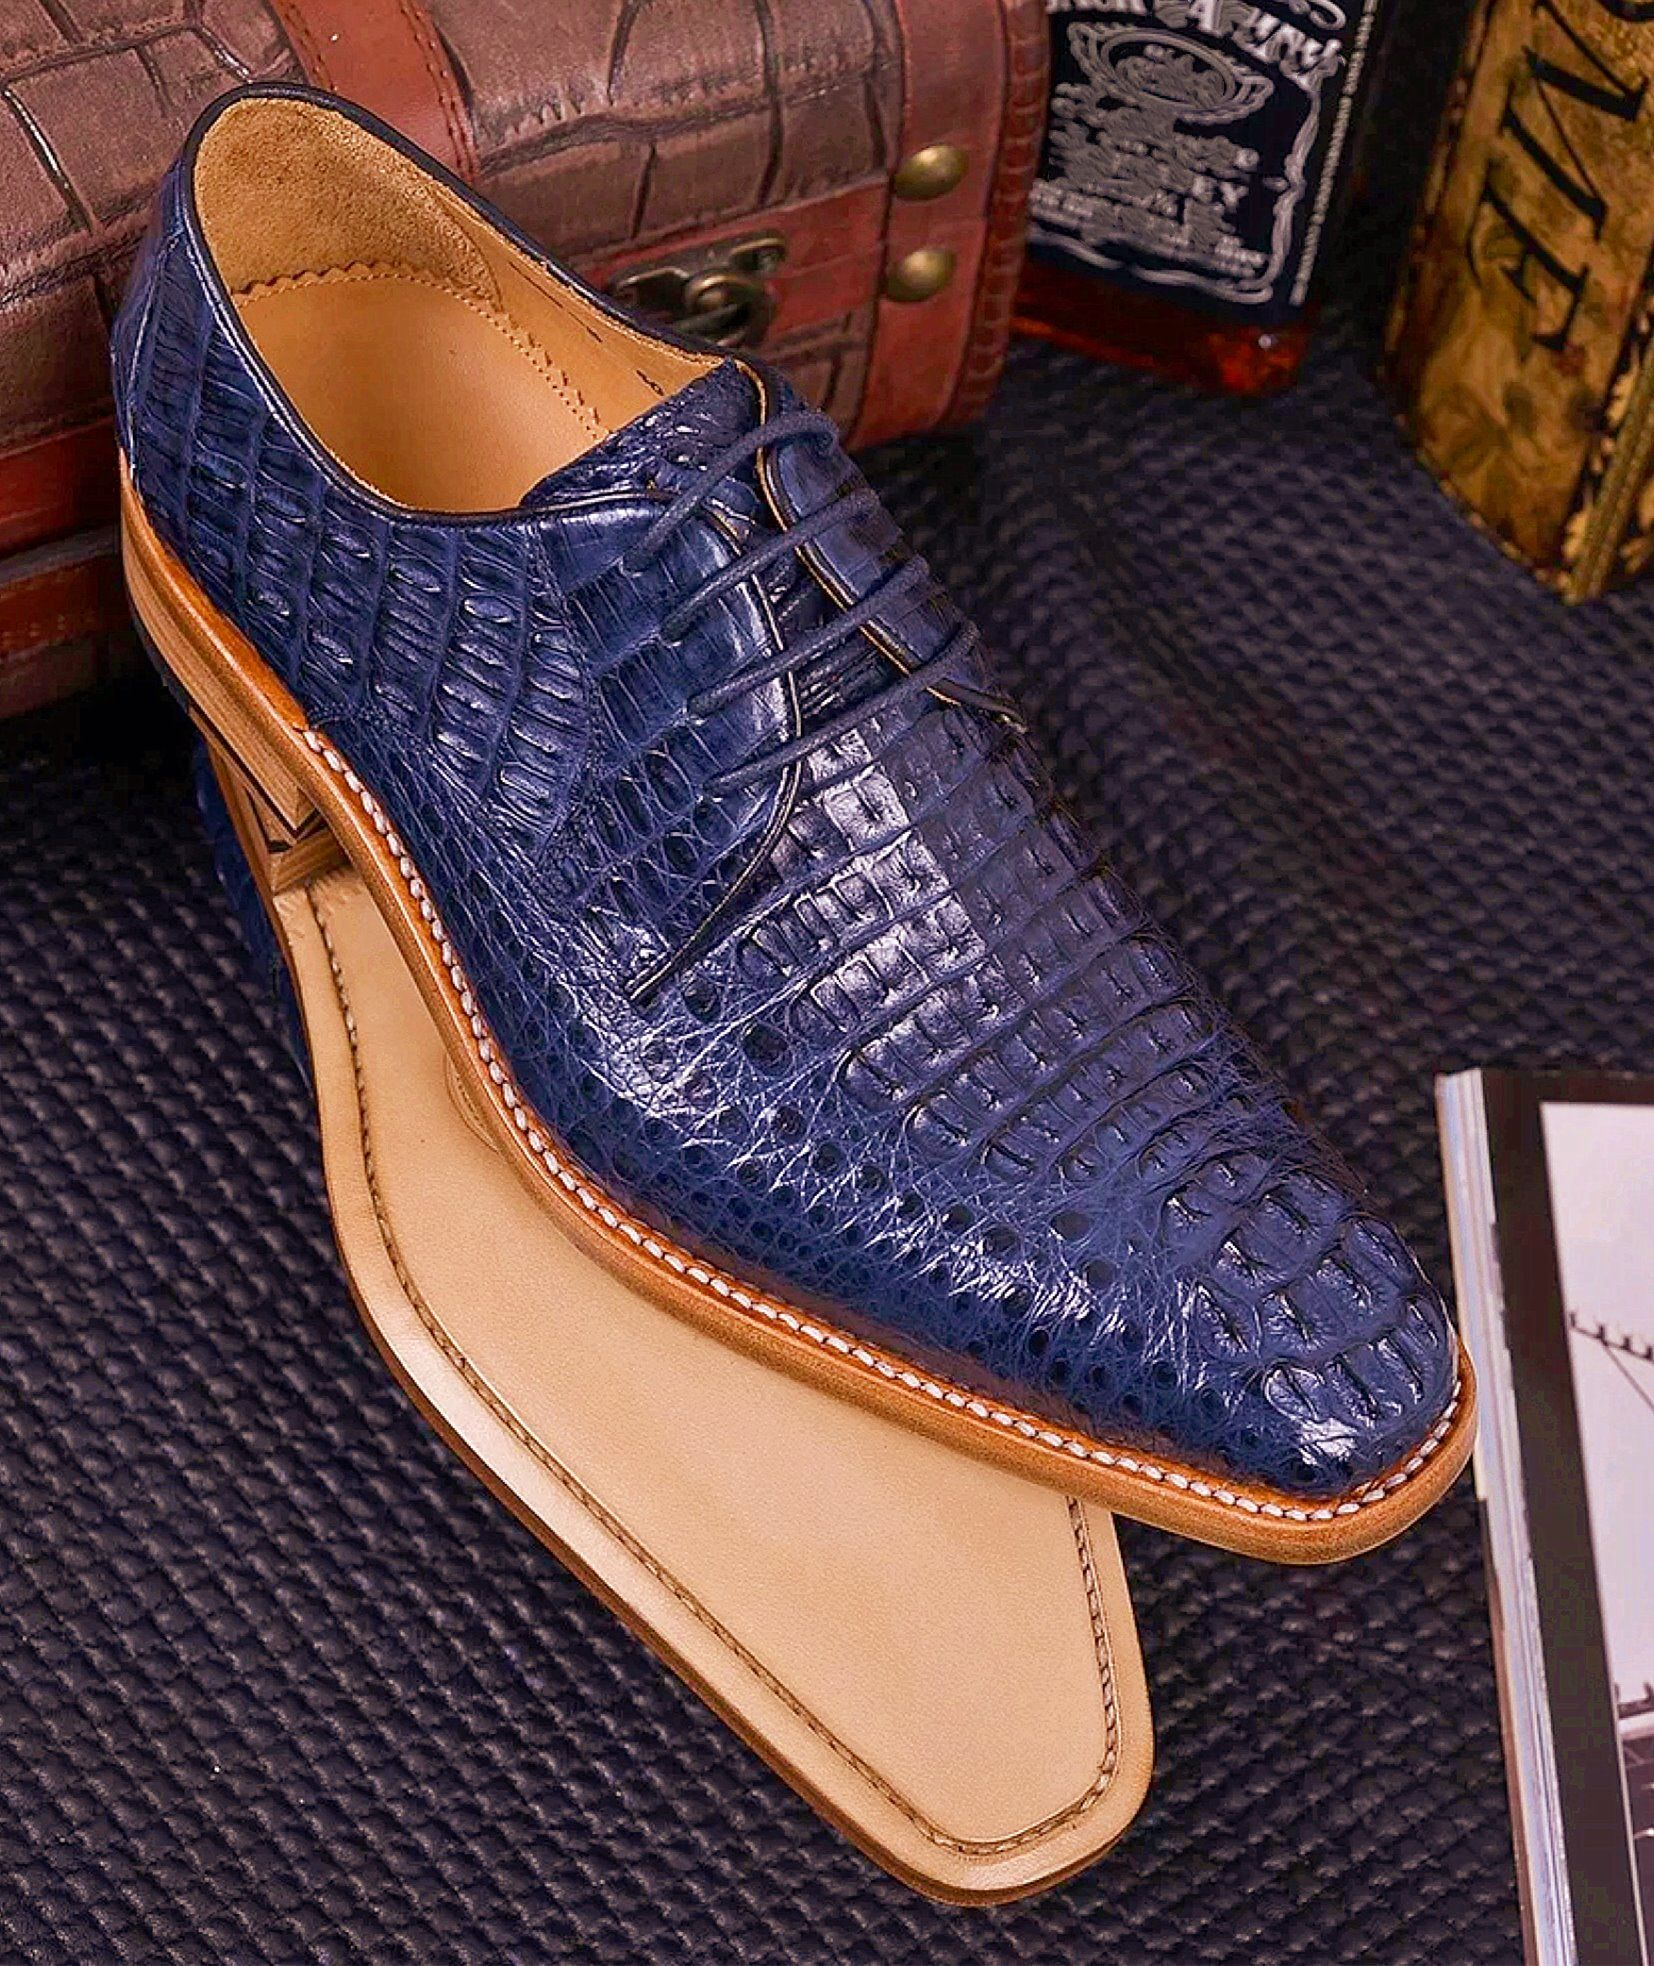 Genuine Crocodile Leather Shoes is part of Crocodile leather shoes - Please click here to determine your shoe size